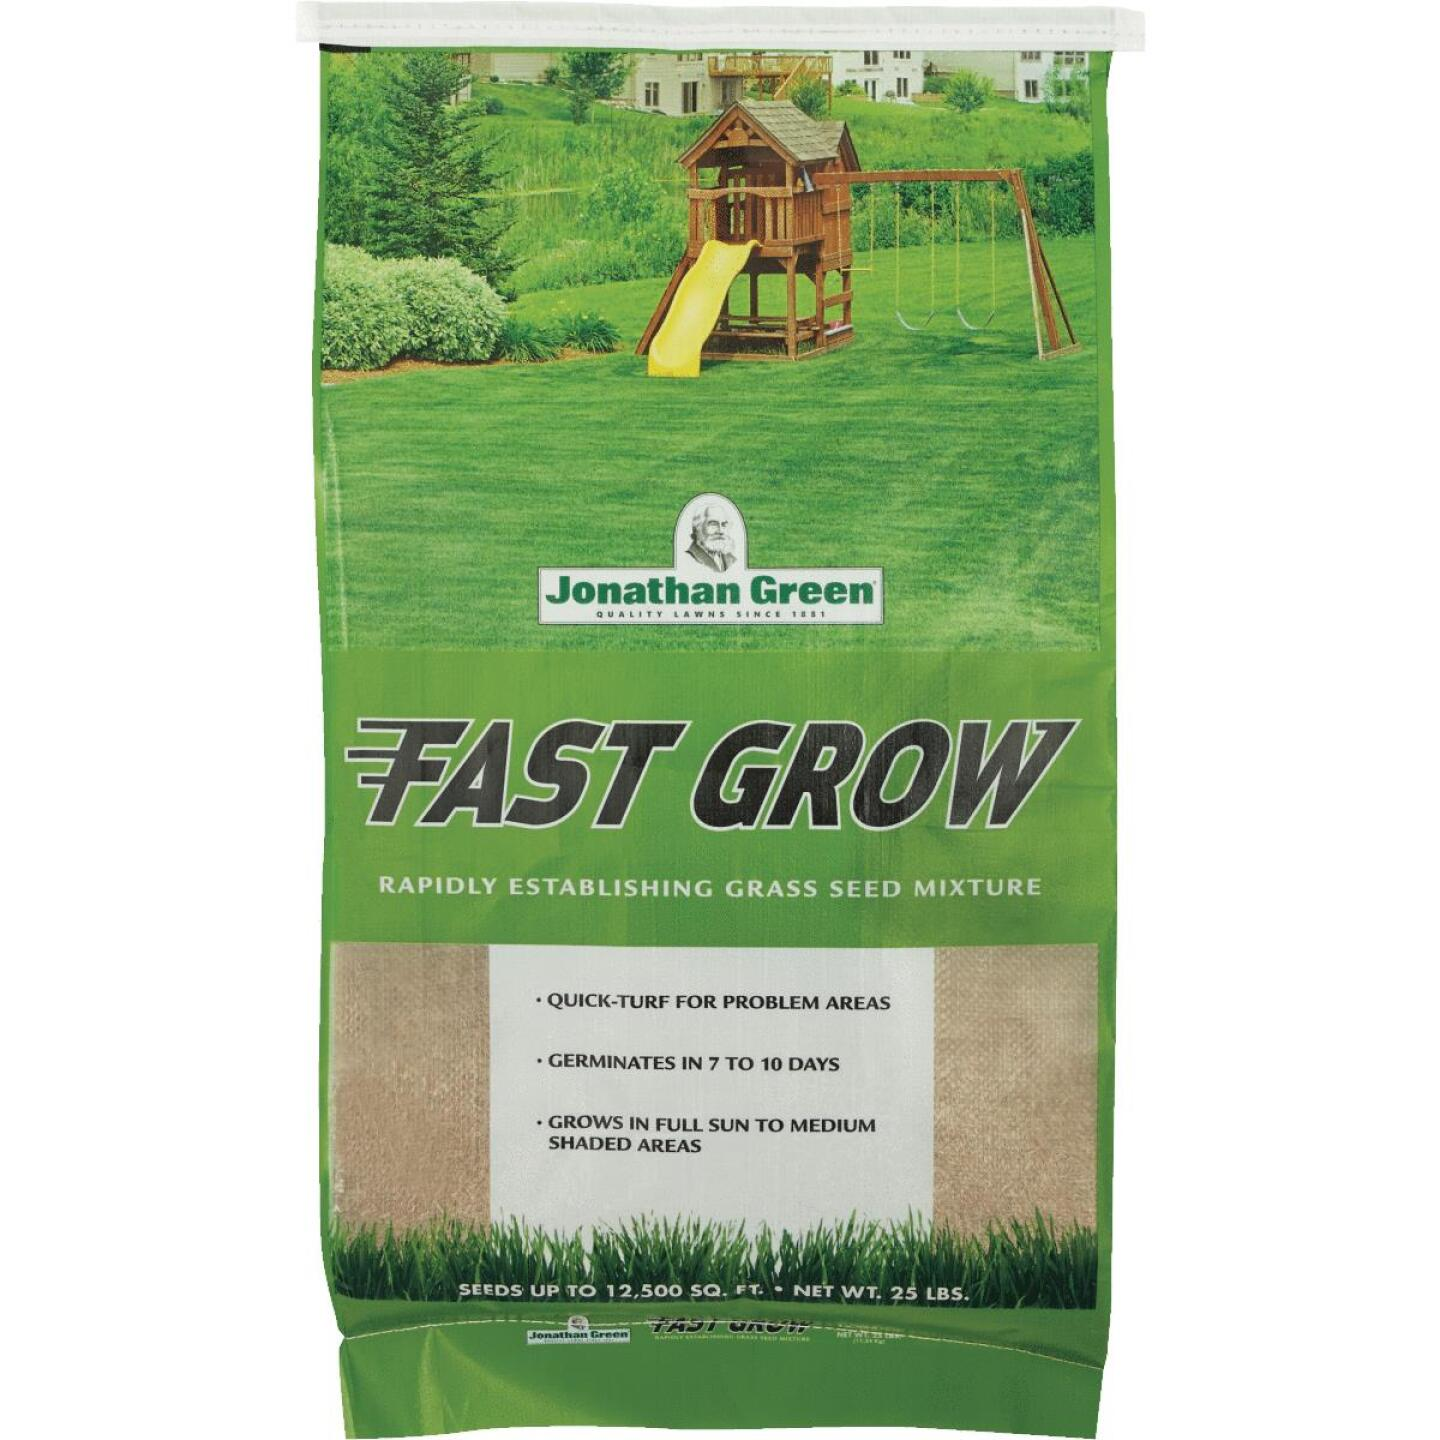 Jonathan Green Fast Grow 25 Lb. 6250 Sq. Ft. Coverage Ryegrass & Fescue Grass Seed Image 1